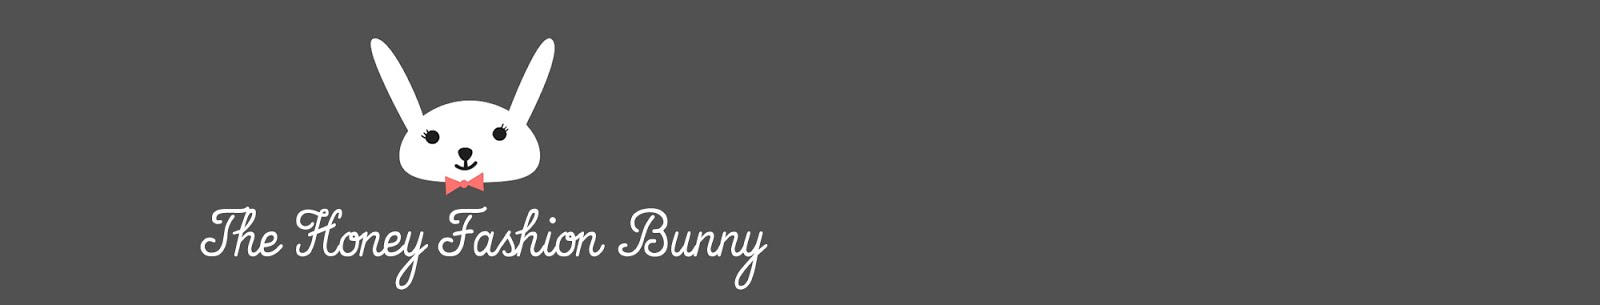 the Honey Fashion Bunny